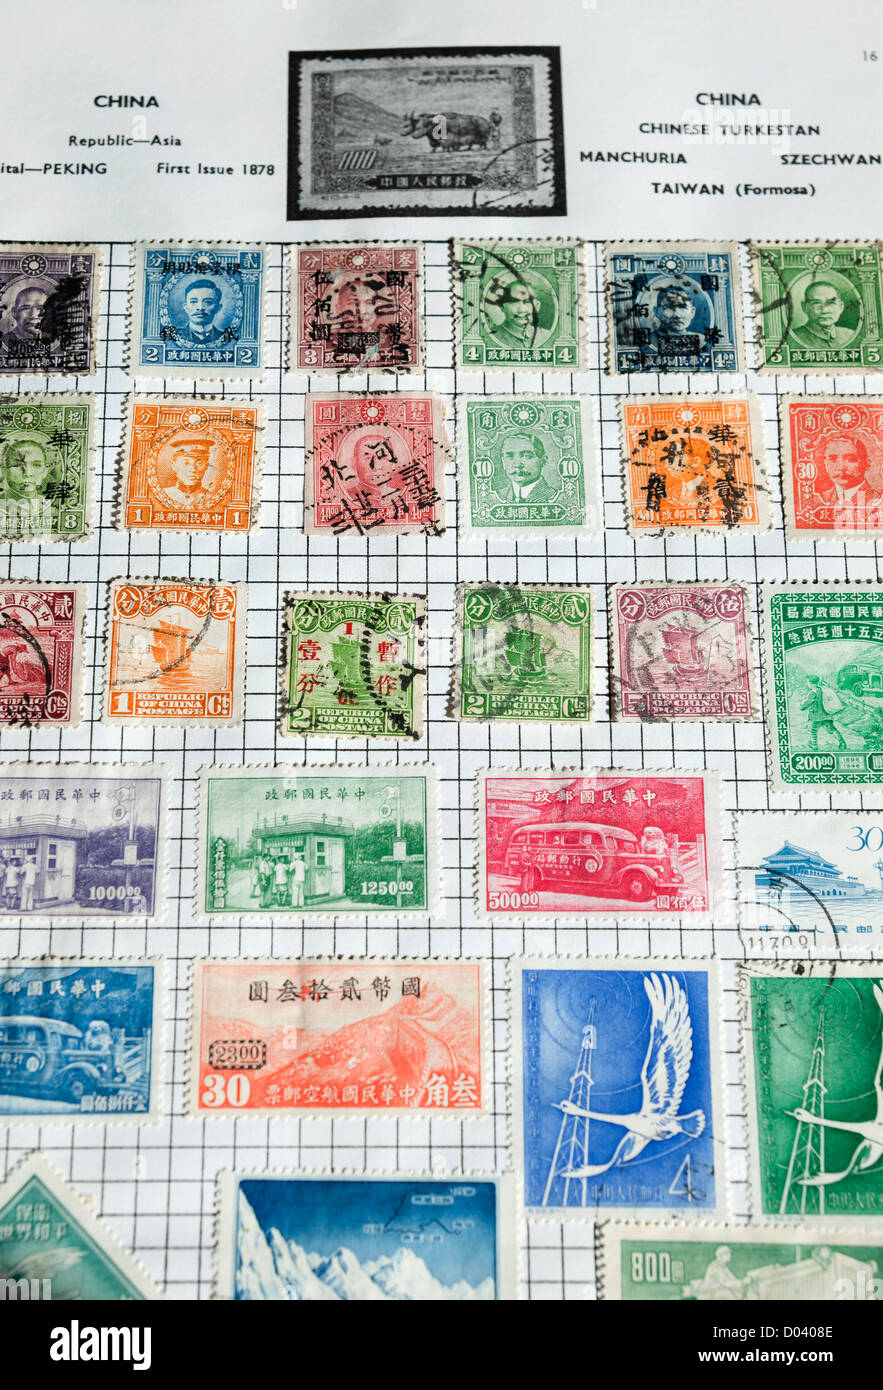 Page of Chinese stamps in album - Stock Image